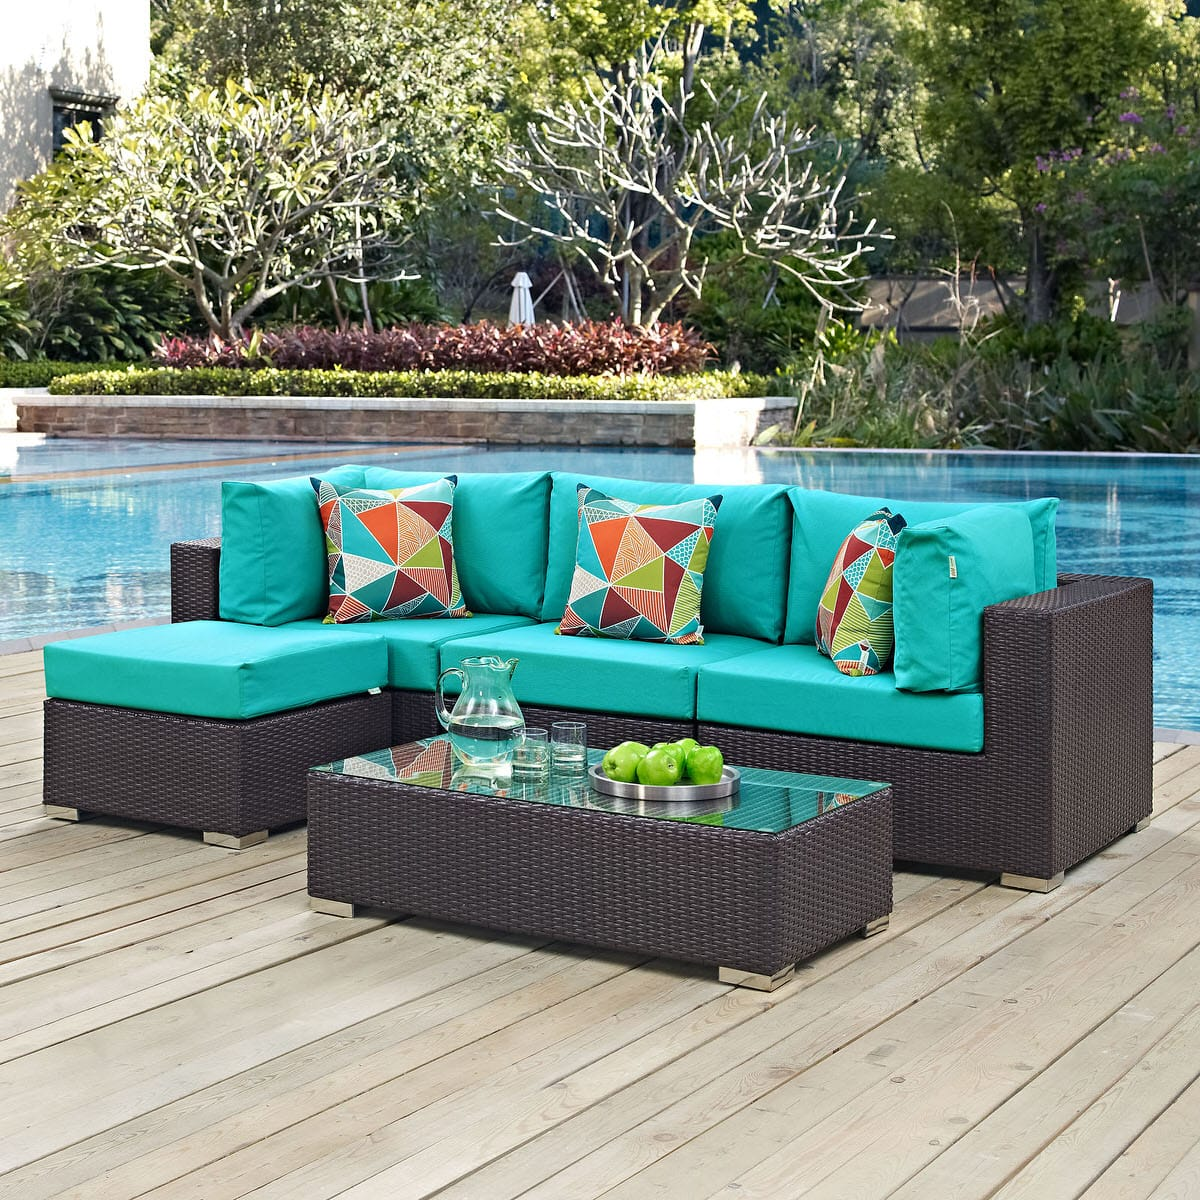 size patio couches for teak seats ideas sale as exceptional of set images gray fearsome sets fresh swingirs browse sectional relatedroducts outdoor full furniture saleiece